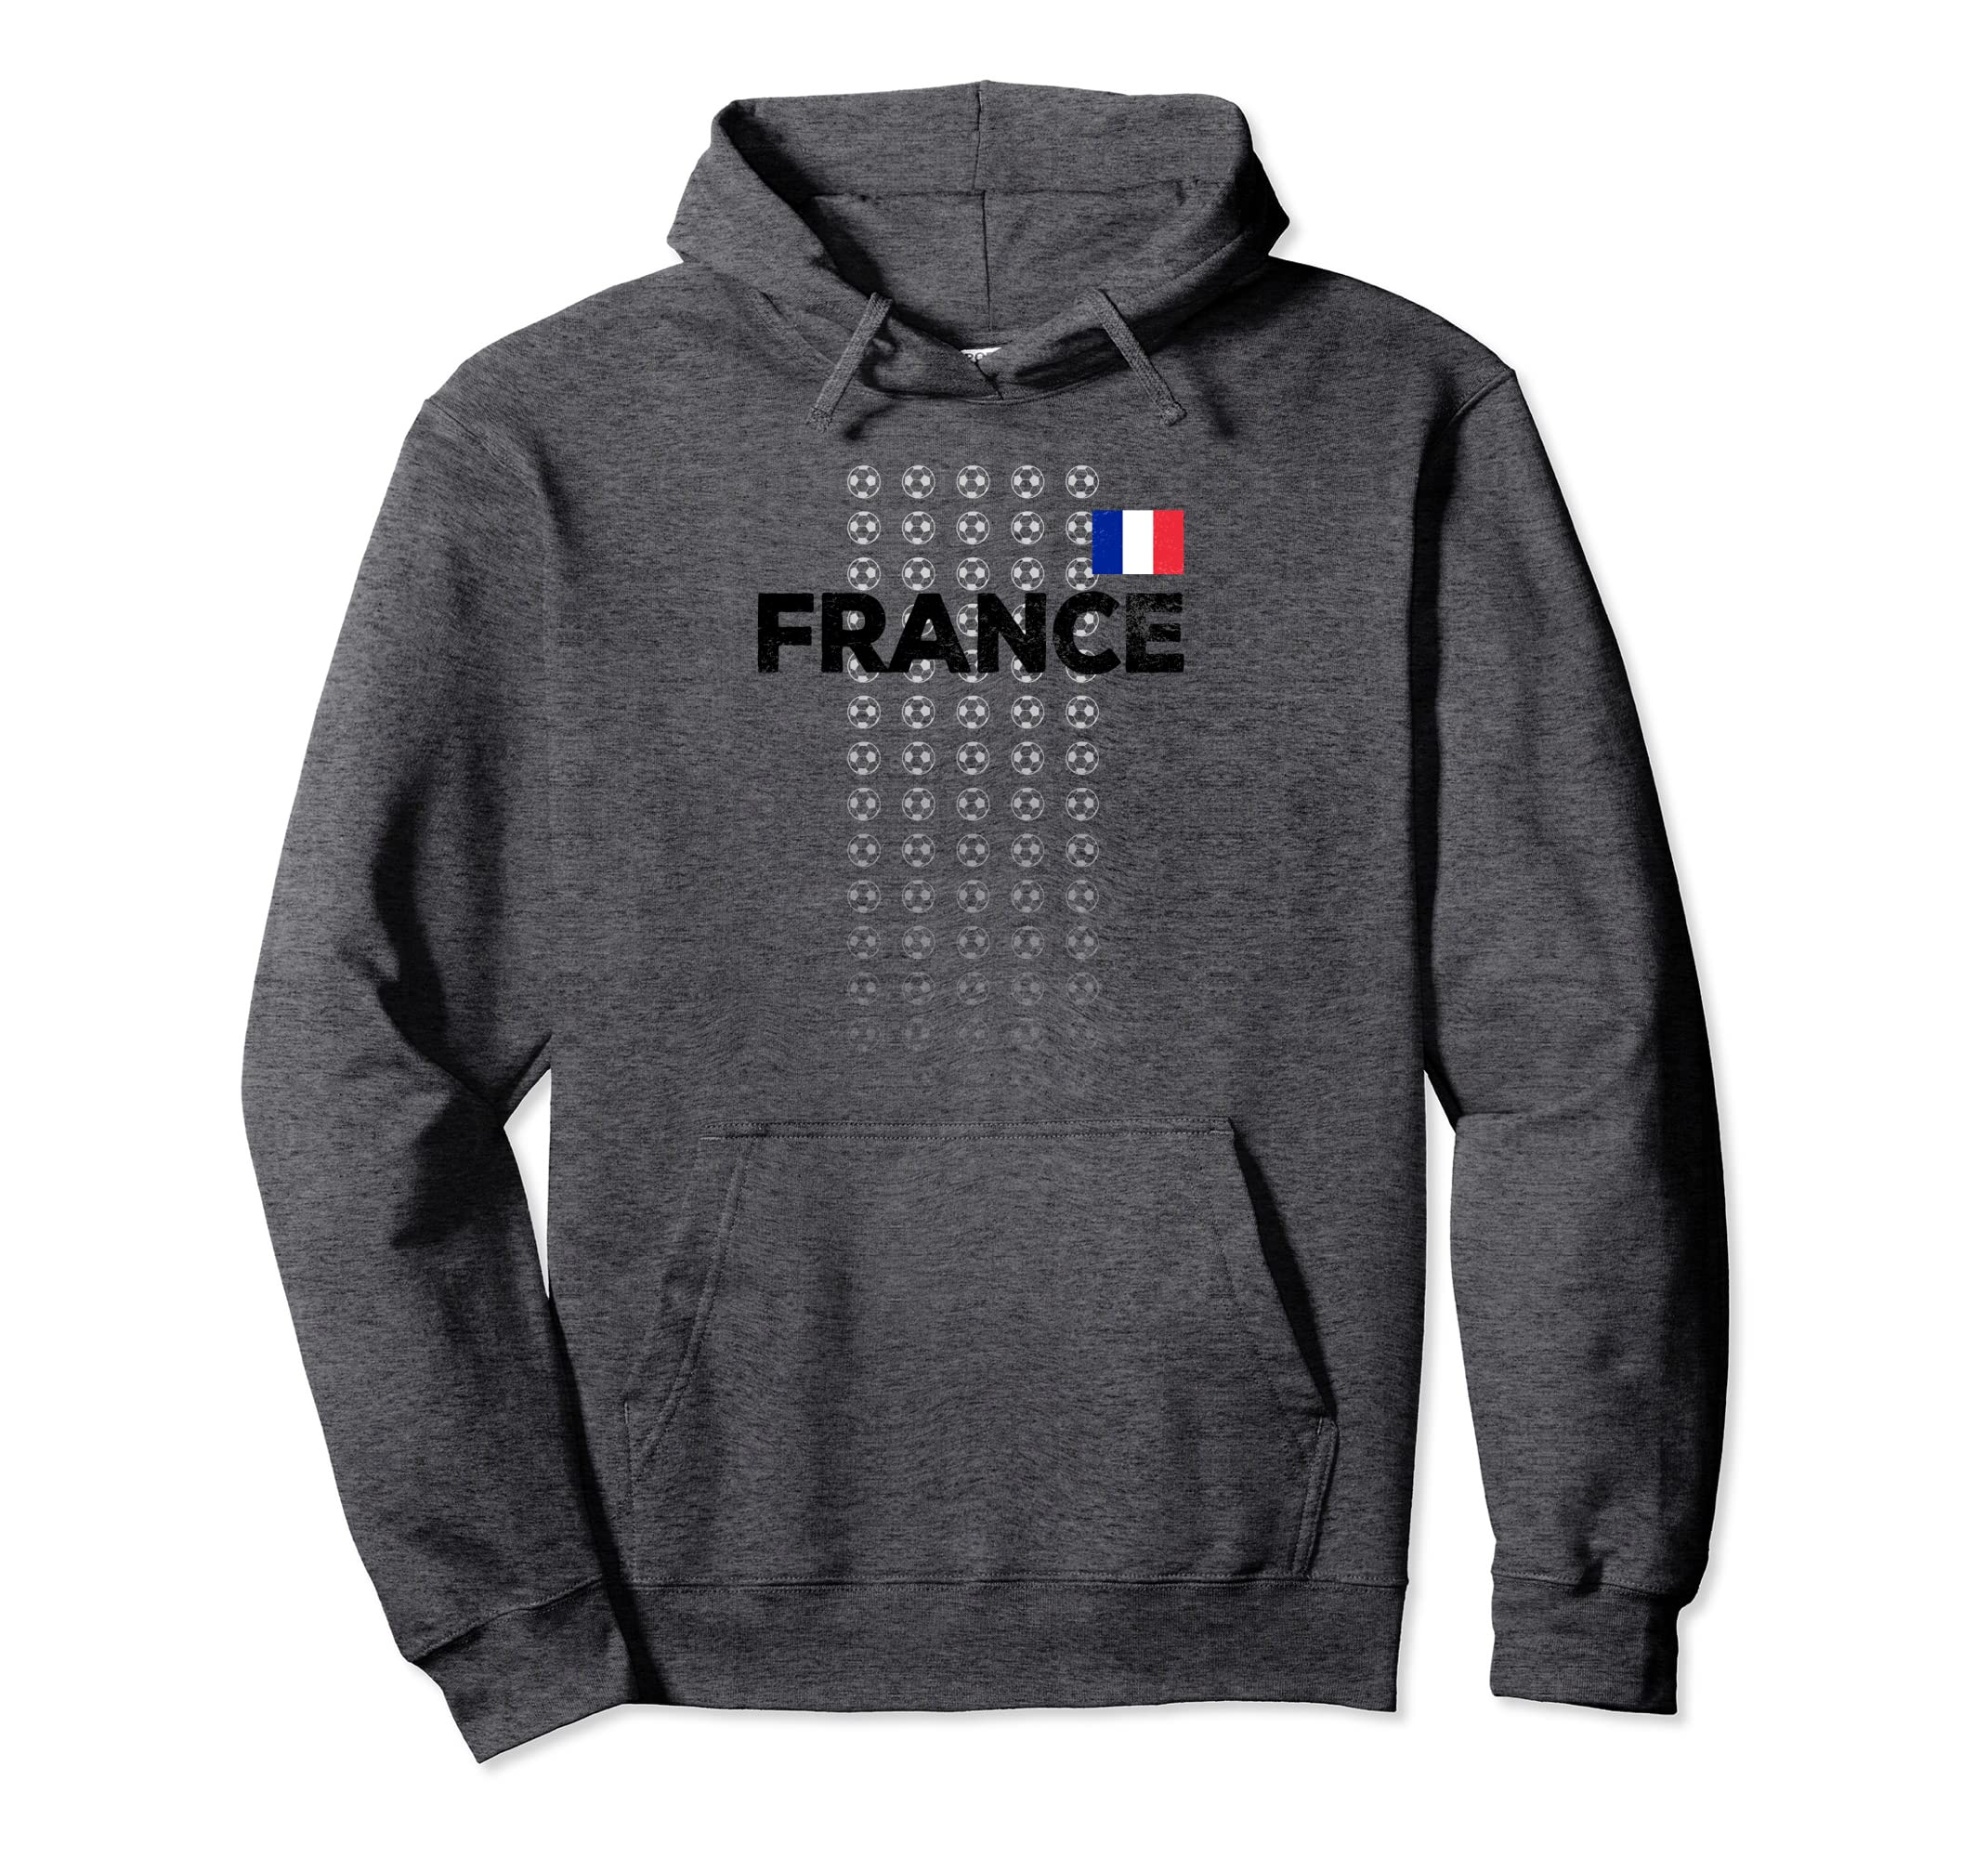 sports shoes b4517 5e407 Amazon.com: France Soccer Team Hoodie Top French Football ...